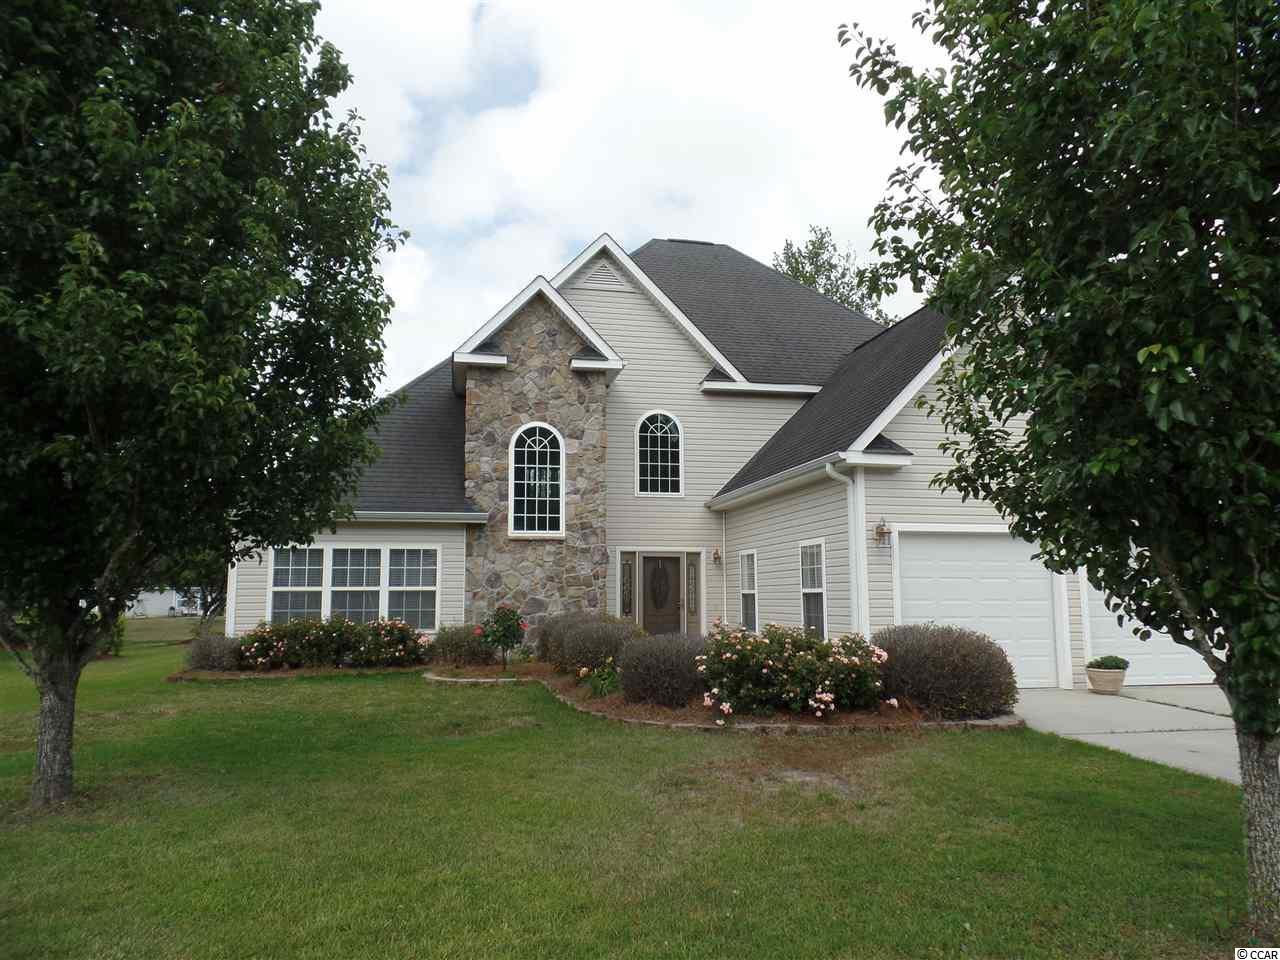 Single Family Home for Sale at 232 Sienna Drive 232 Sienna Drive Little River, South Carolina 29566 United States